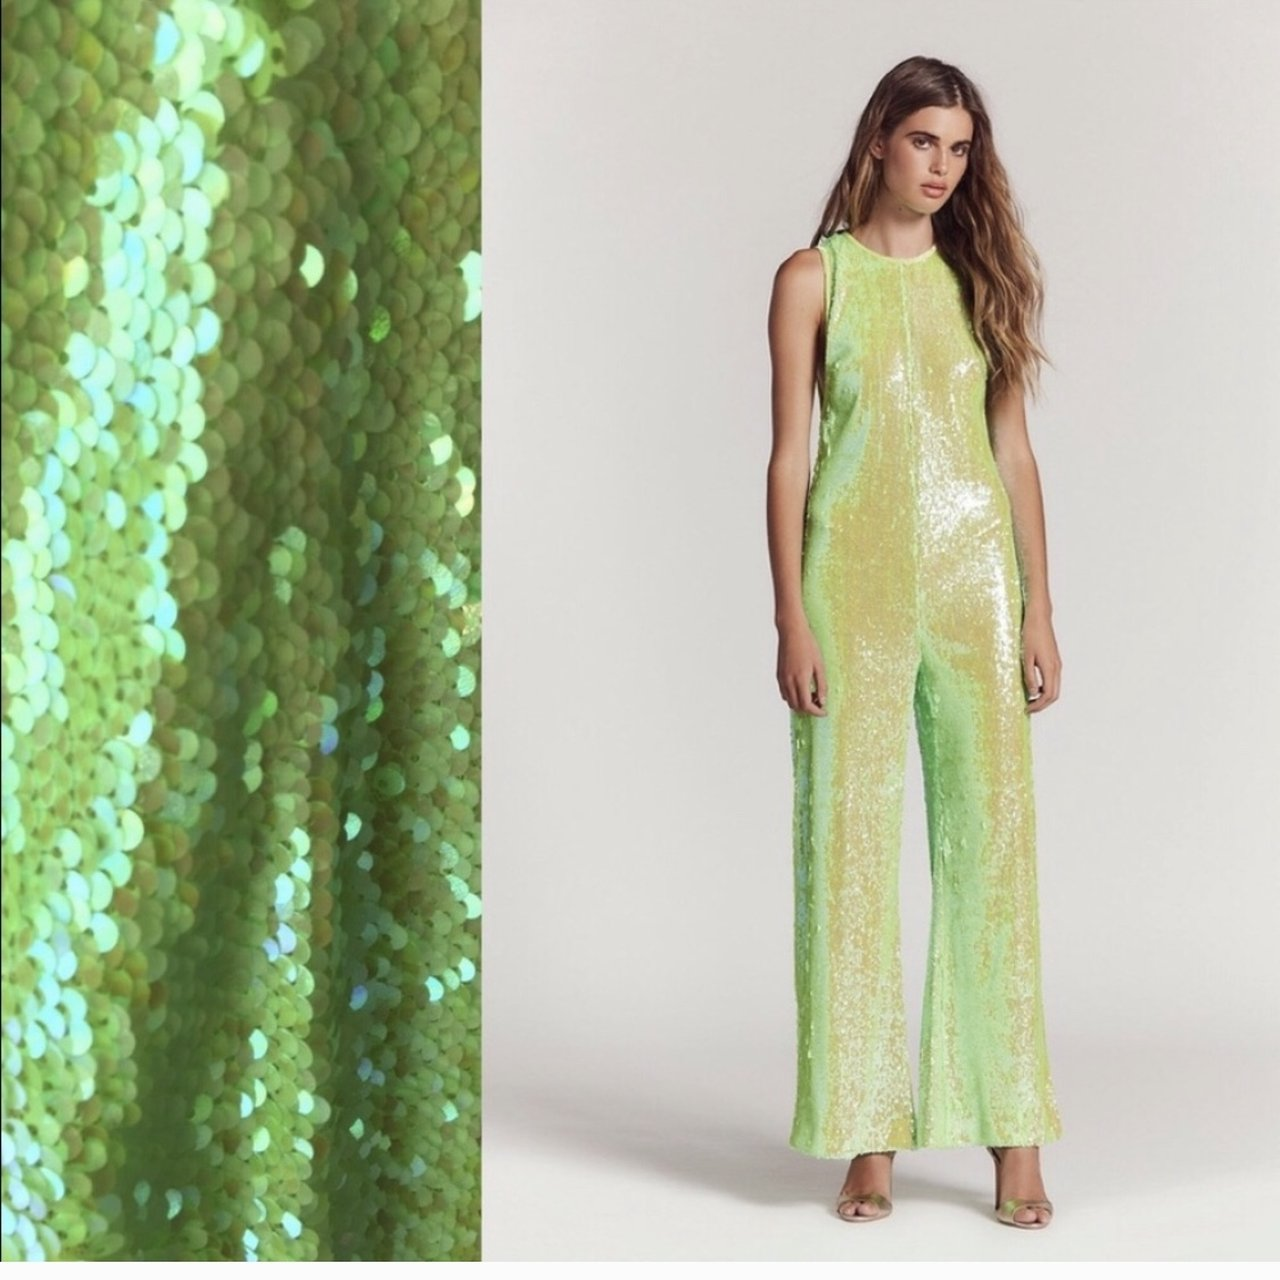 54dfd7cdf4fa Green sequin free people jumpsuit like new worn once - Depop